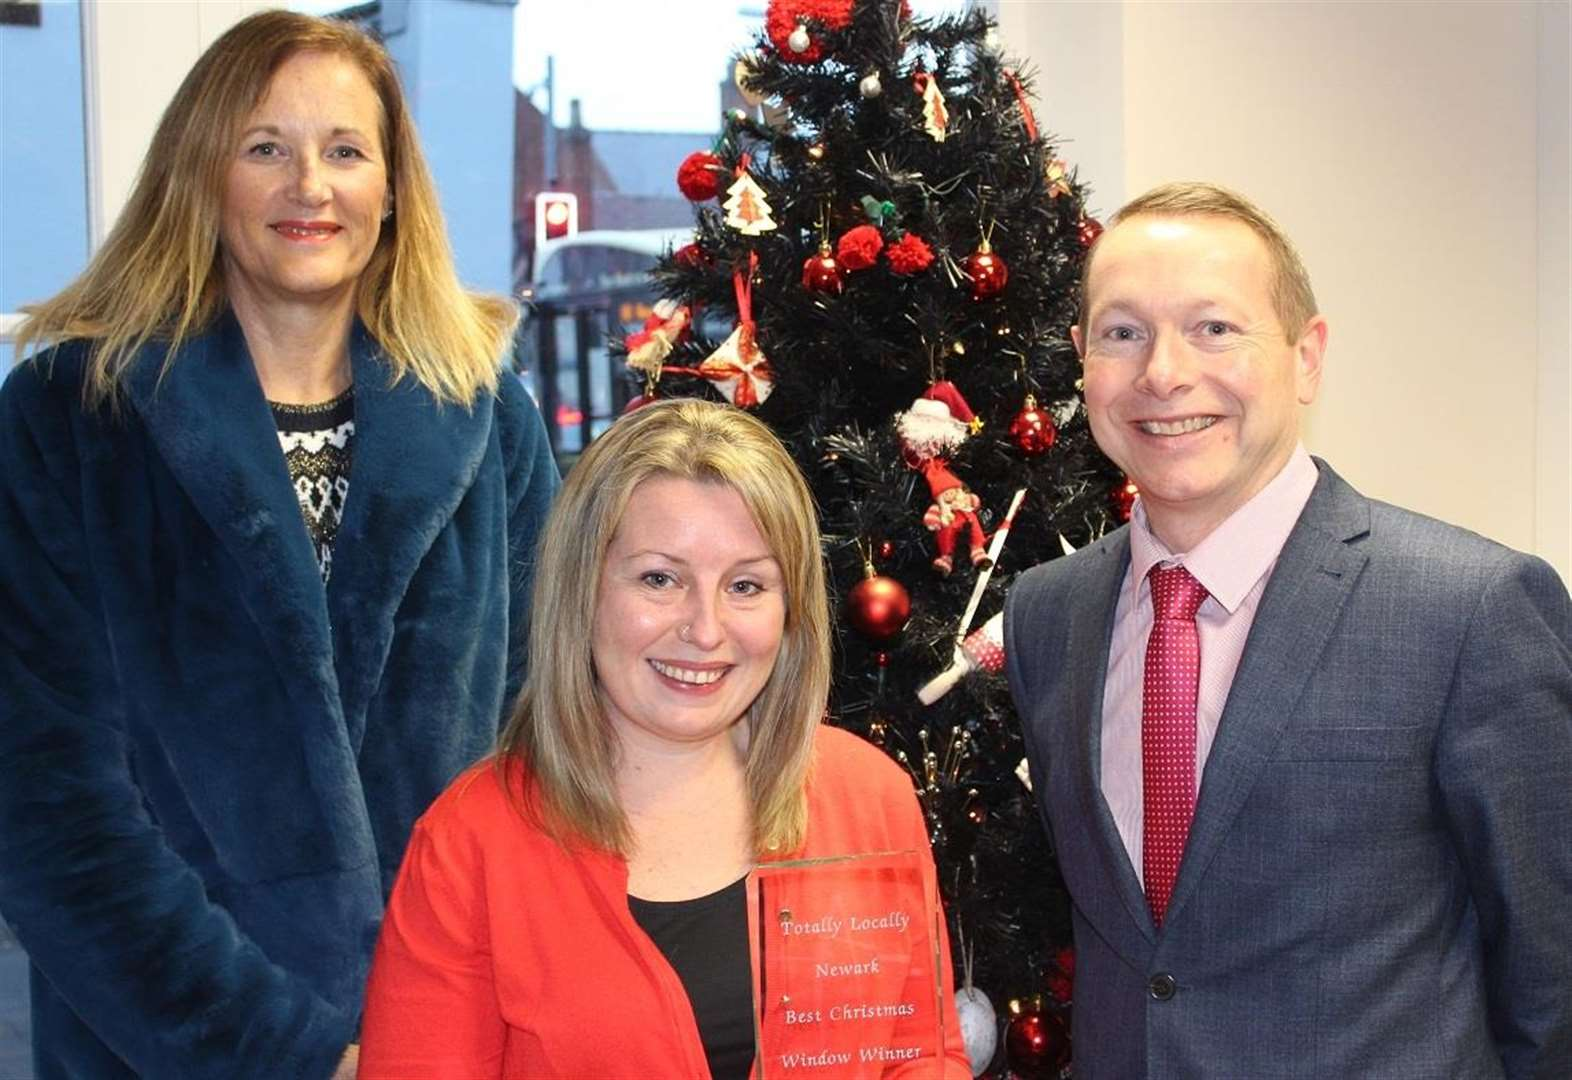 Winner of festive display announced